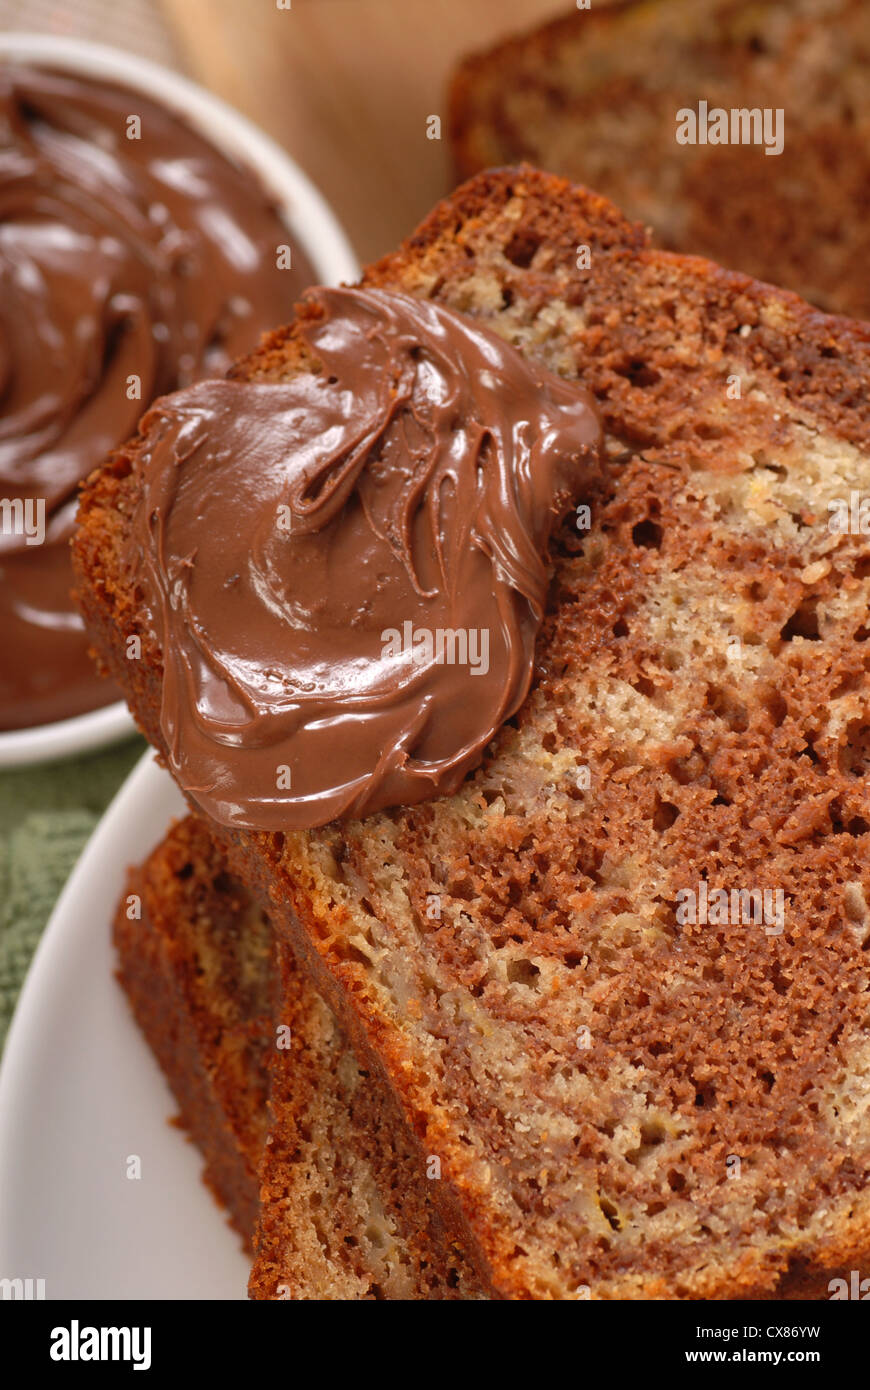 Freshly baked banana and chocolate nut bread with Nutella Stock Photo